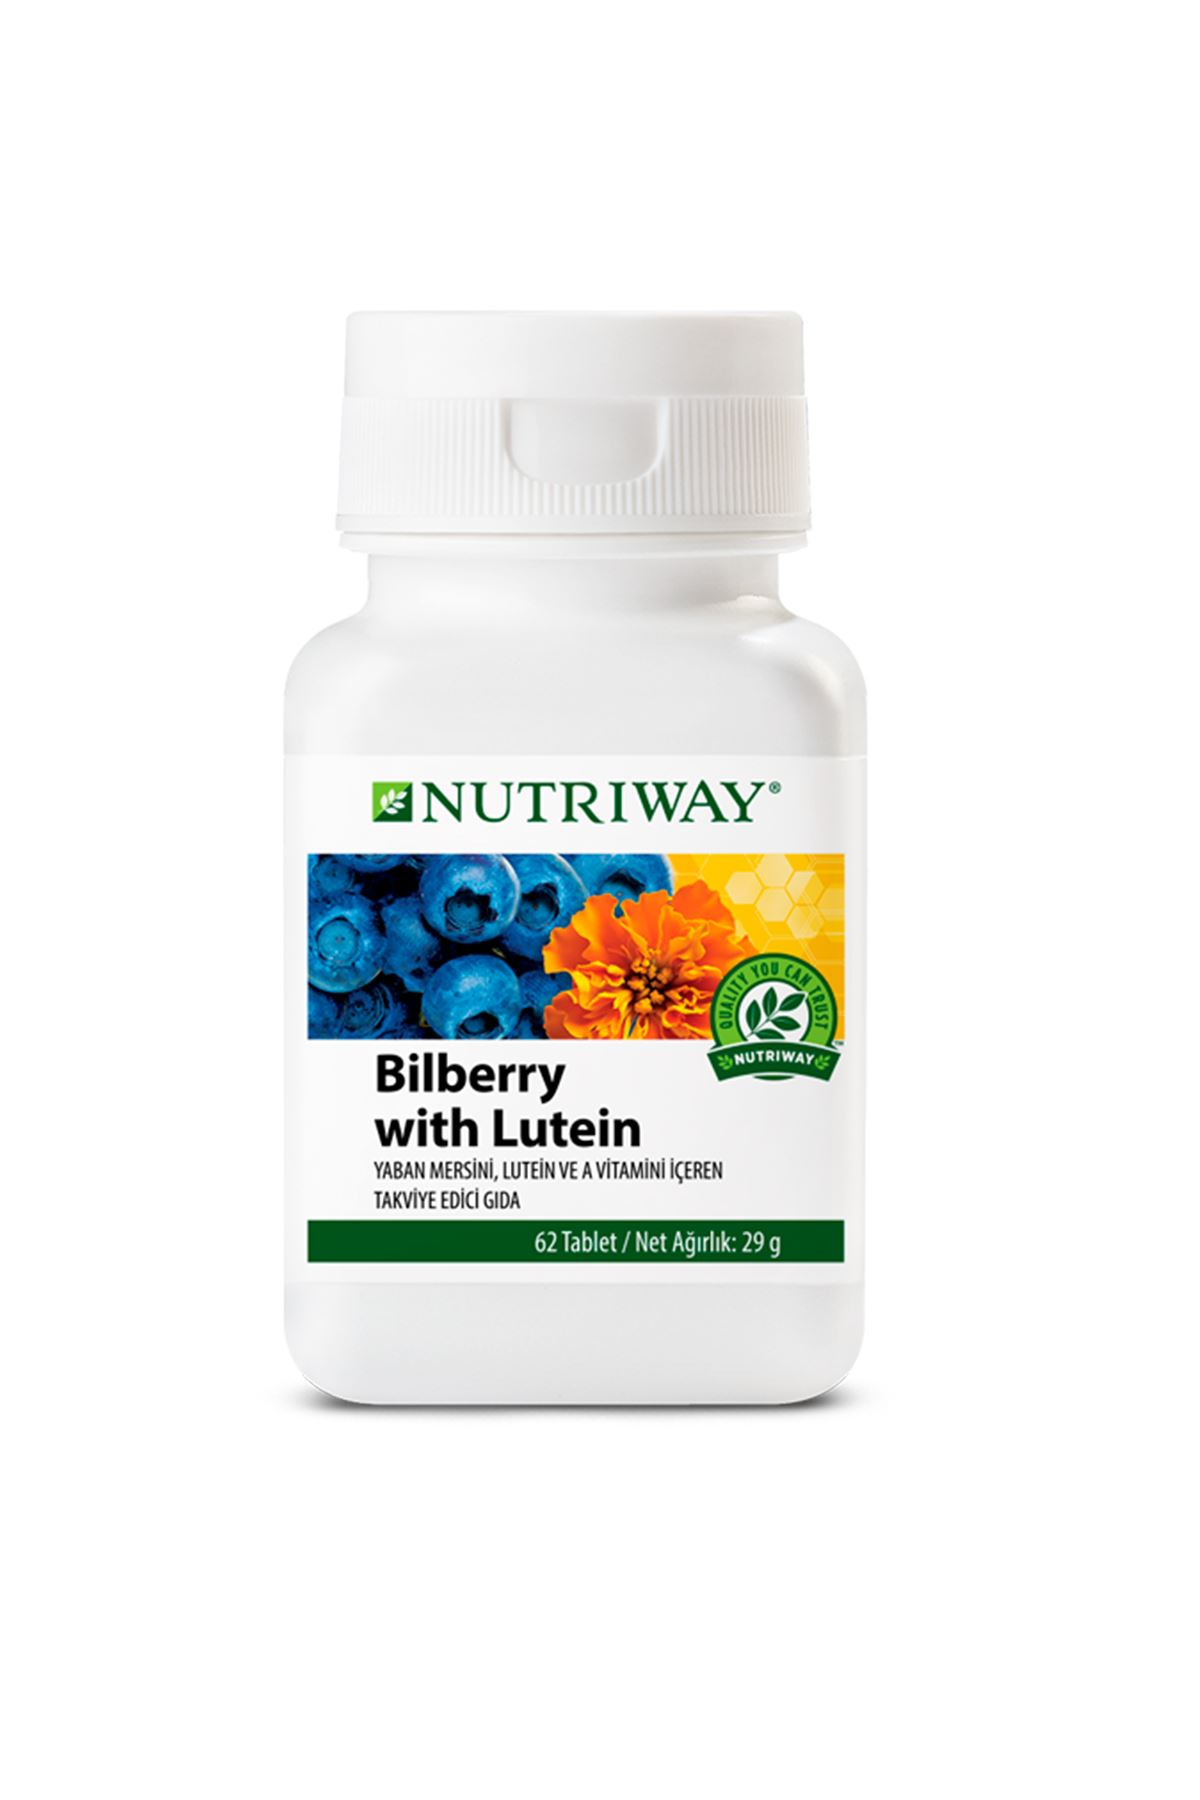 Bilberry with Lutein NUTRIWAY™